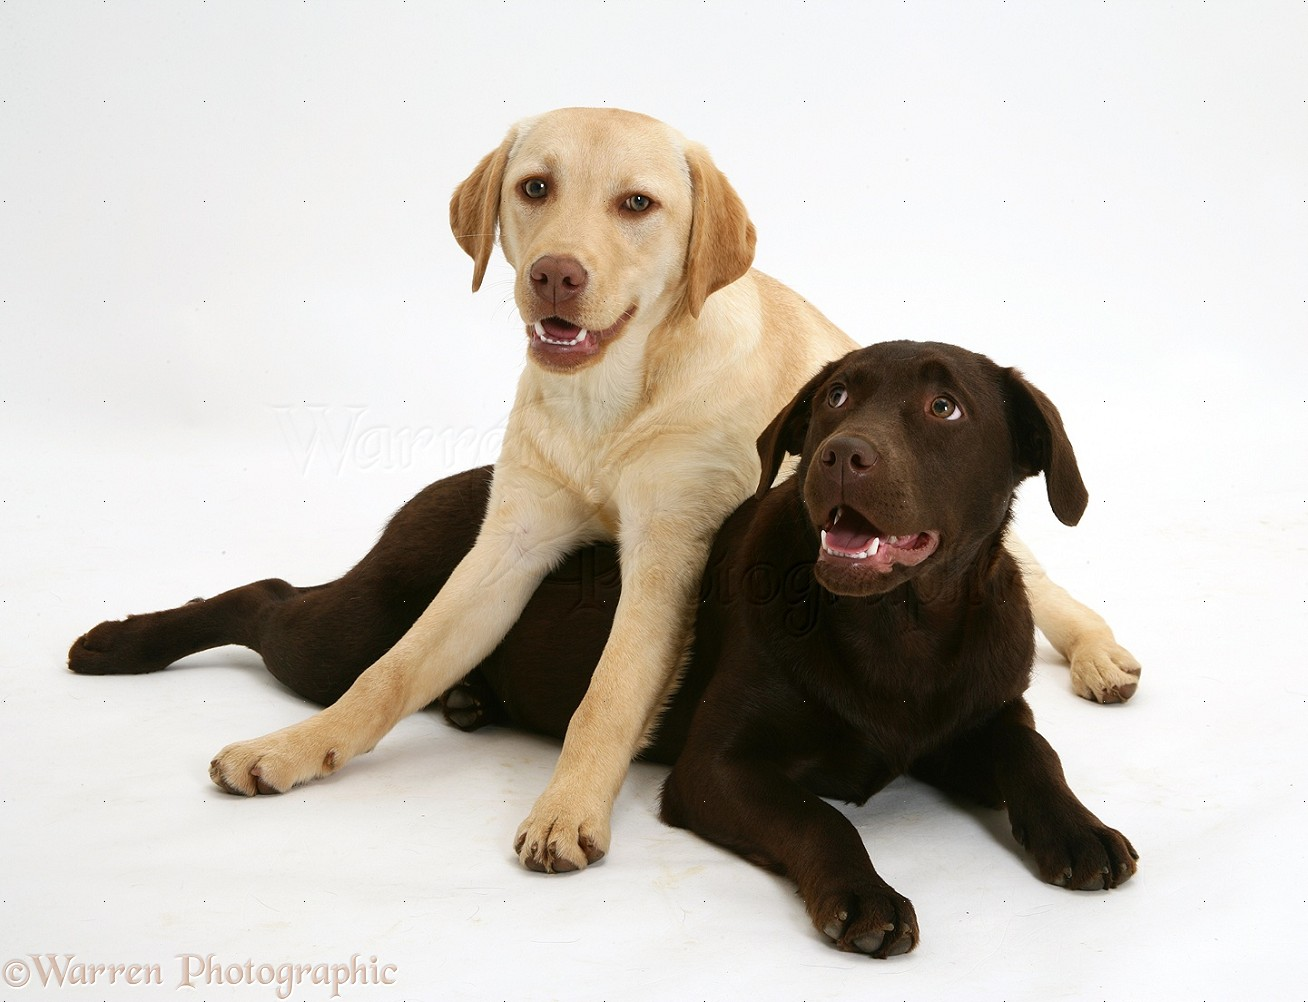 Dogs: Yellow and chocolate Labrador Retrievers photo - WP21937